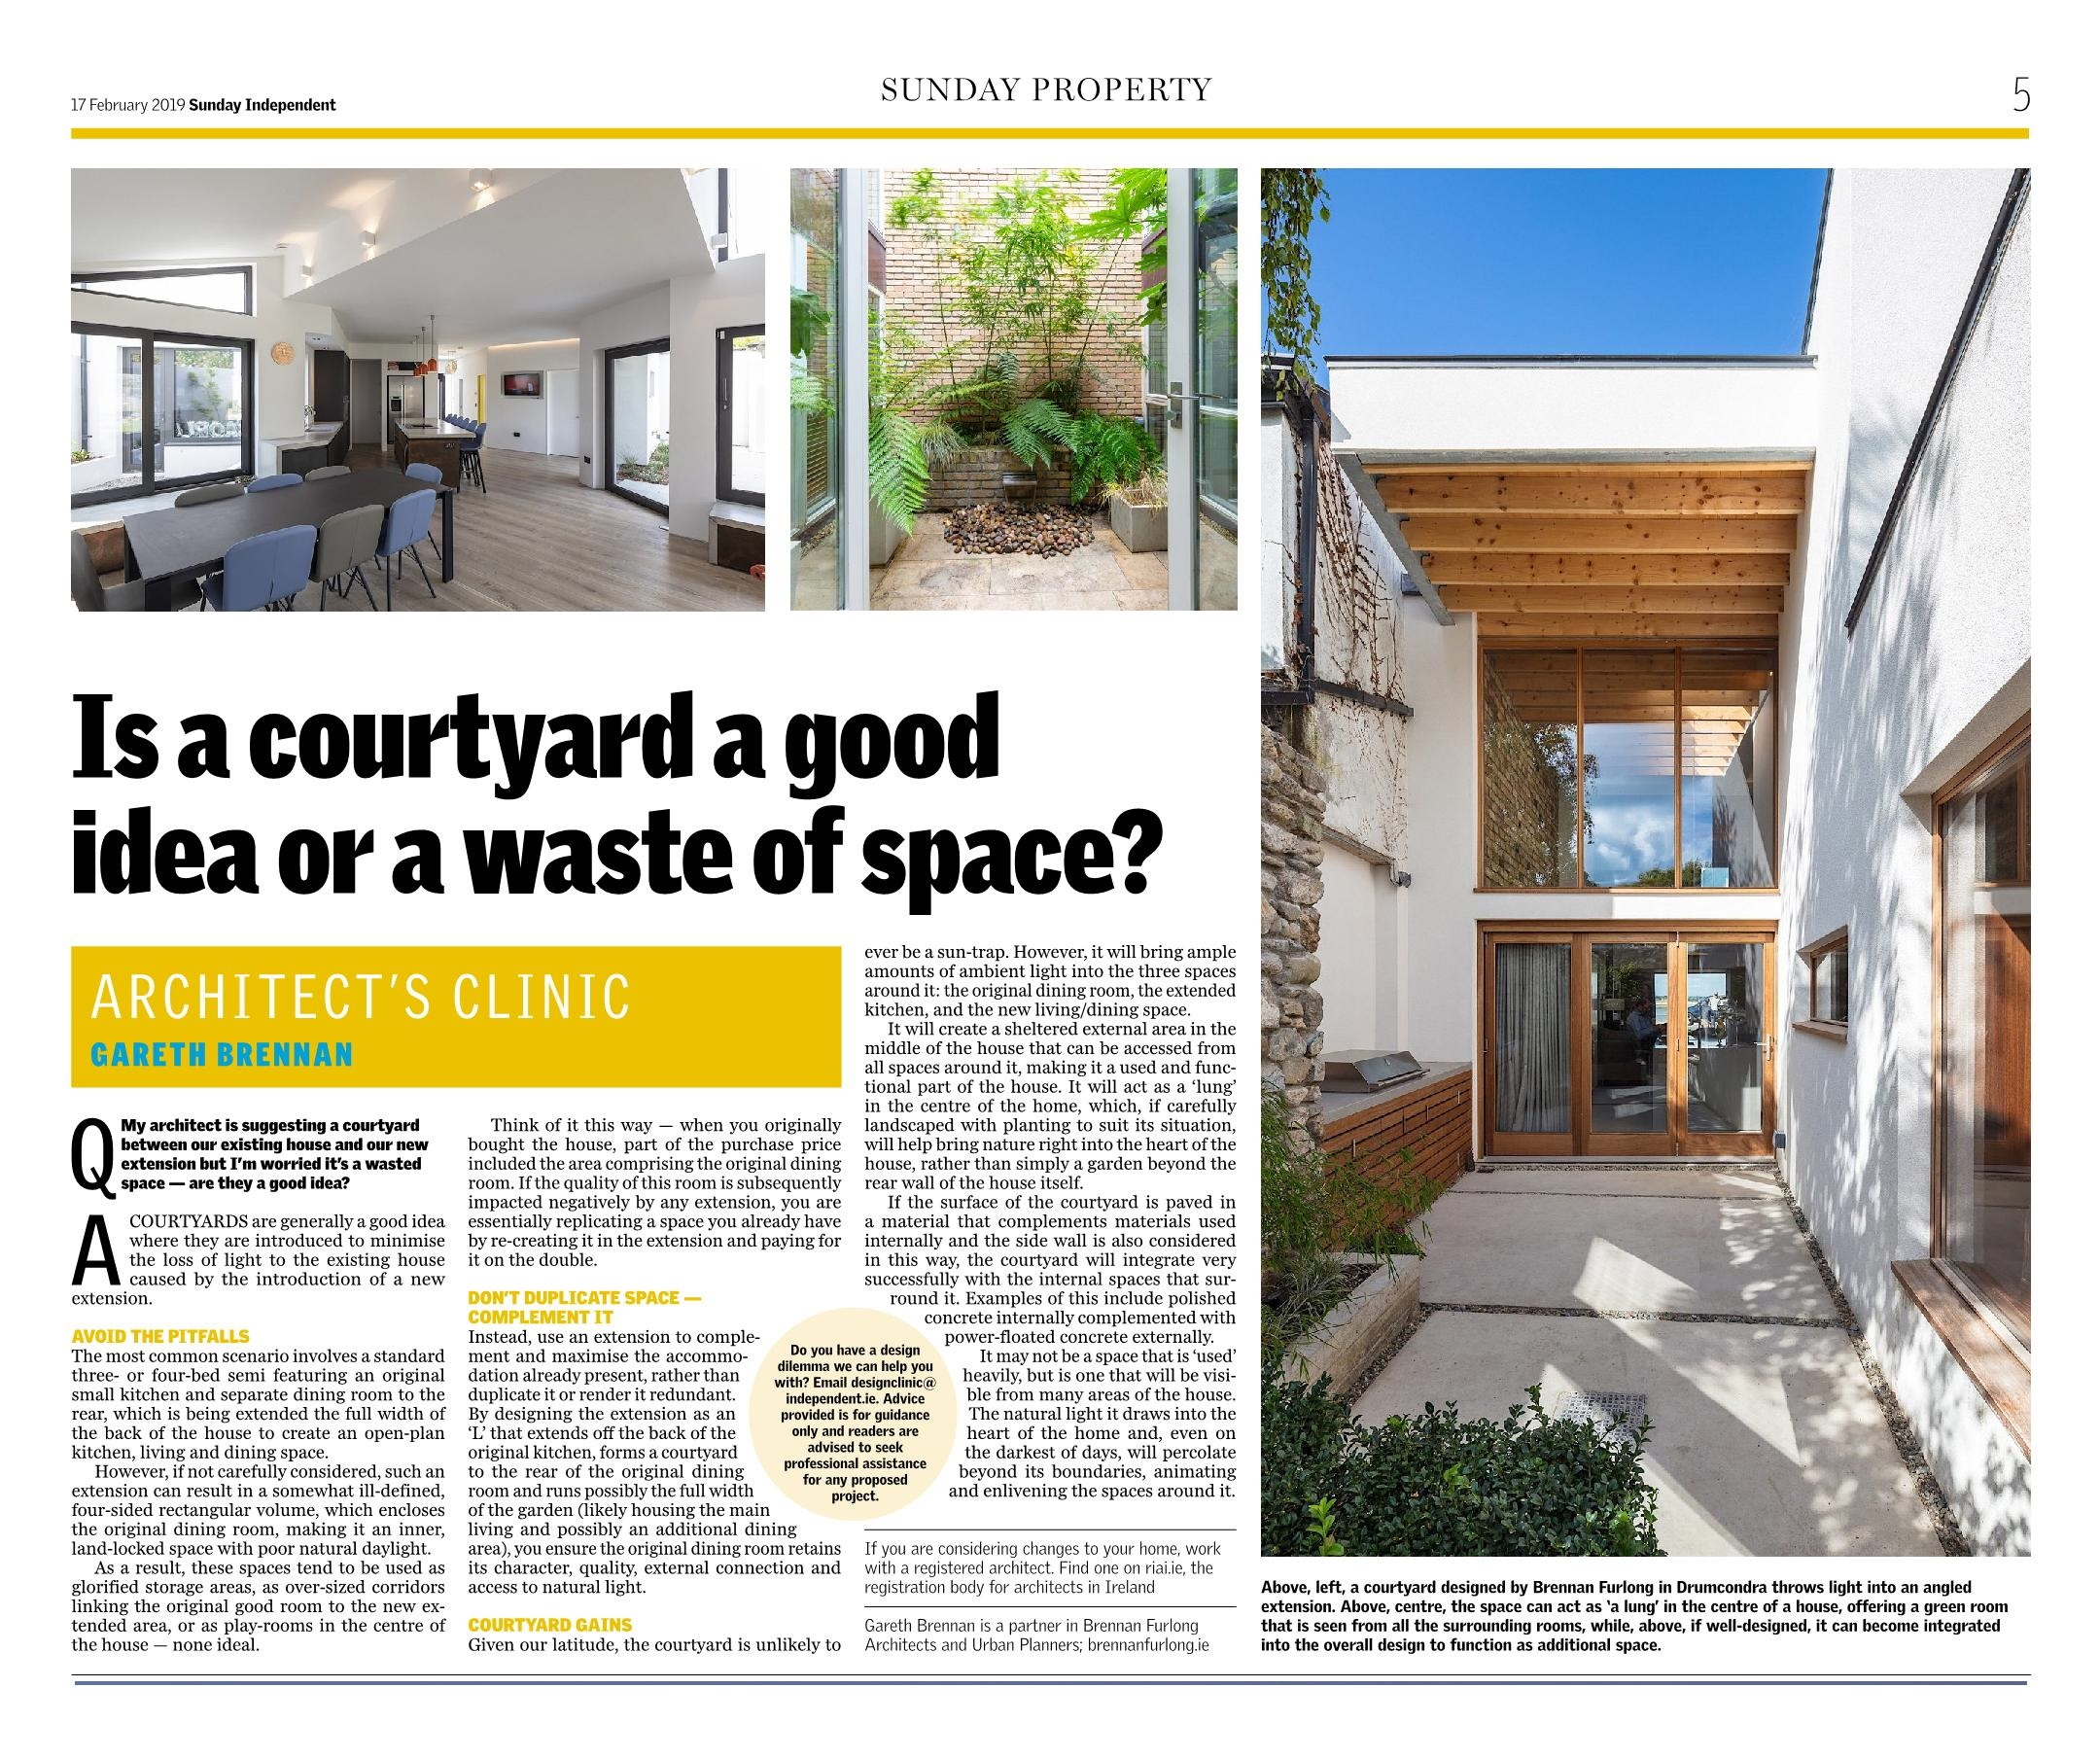 2019.02.17_ARCHITECTS_CLINIC_GARETH_BRENNAN_IS A COURTYARD A WASTE OF SPACE_1.jpg